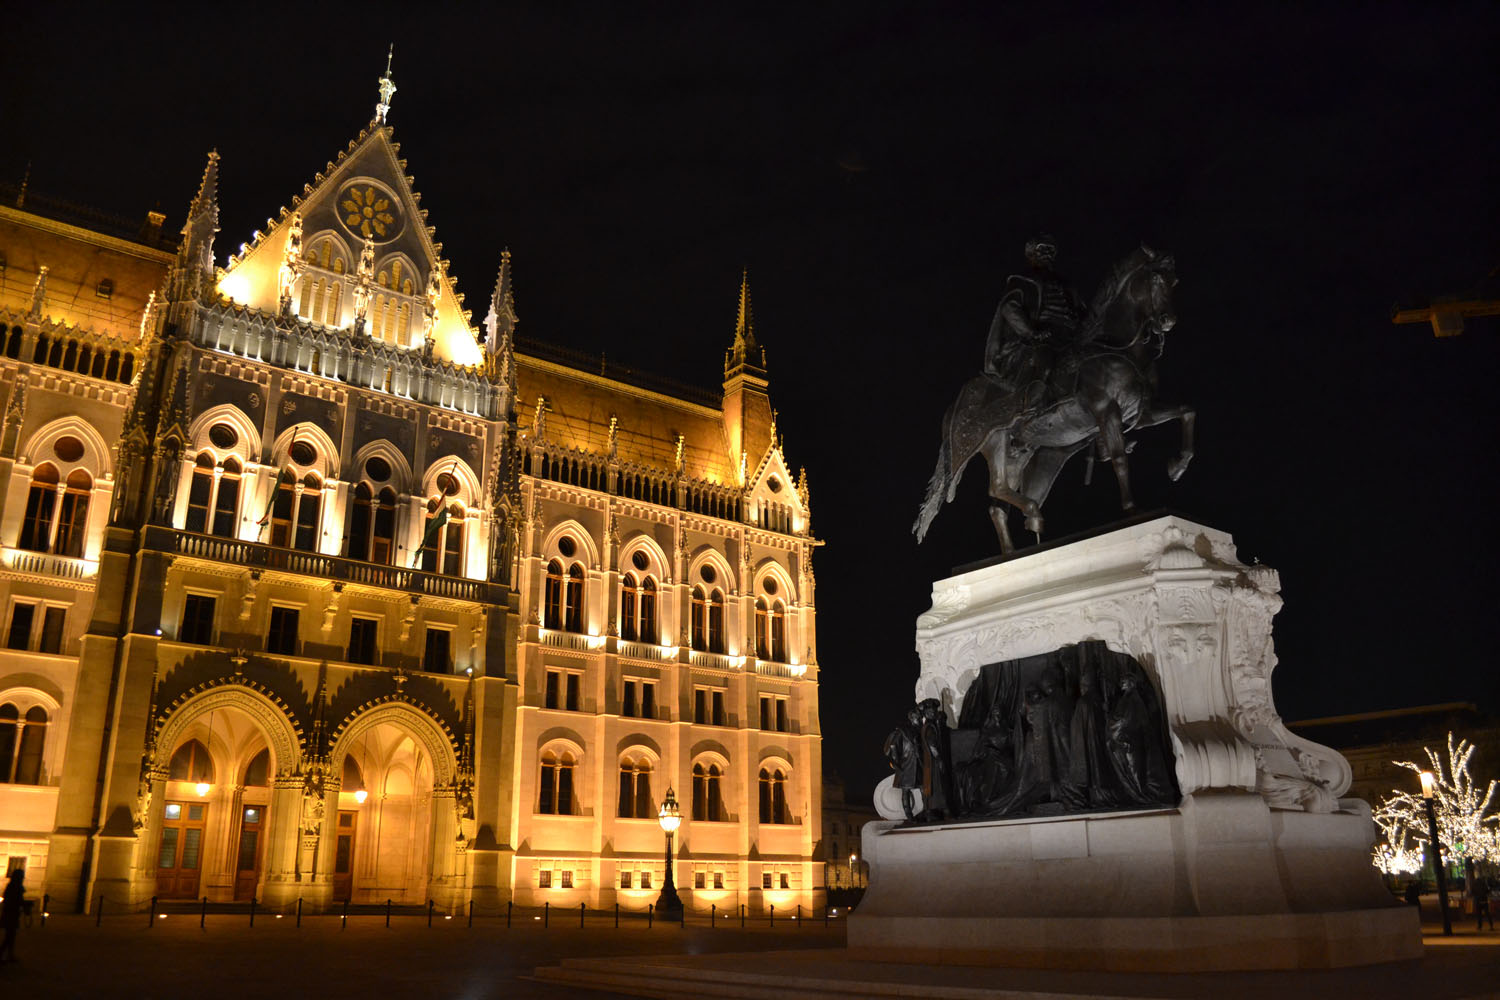 Budapest Parliament statue at night